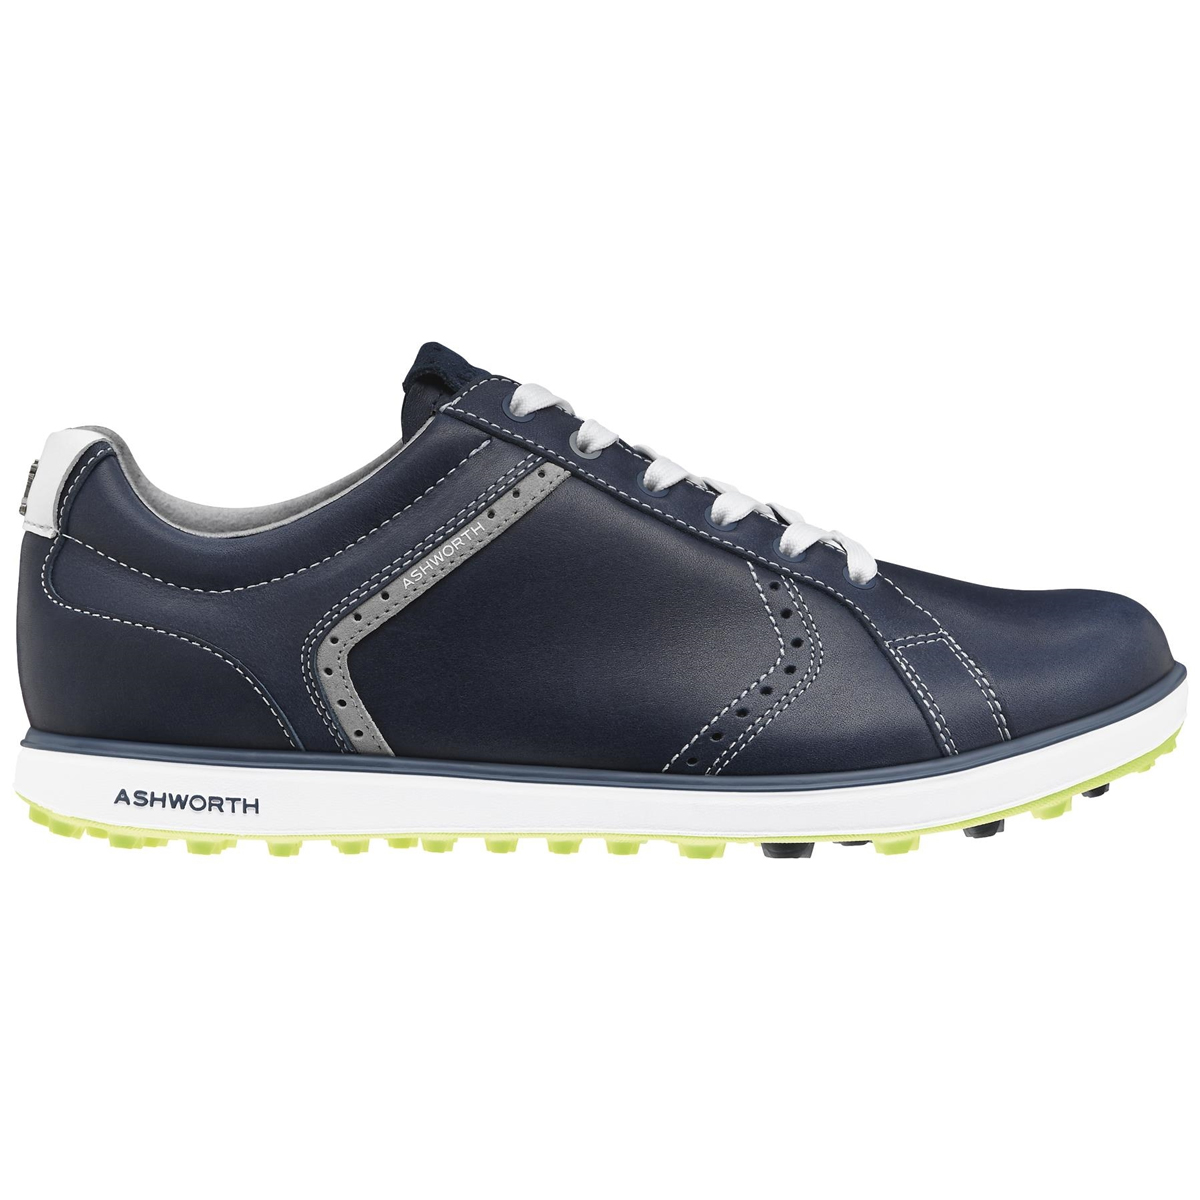 Ashworth Golf Shoes Size